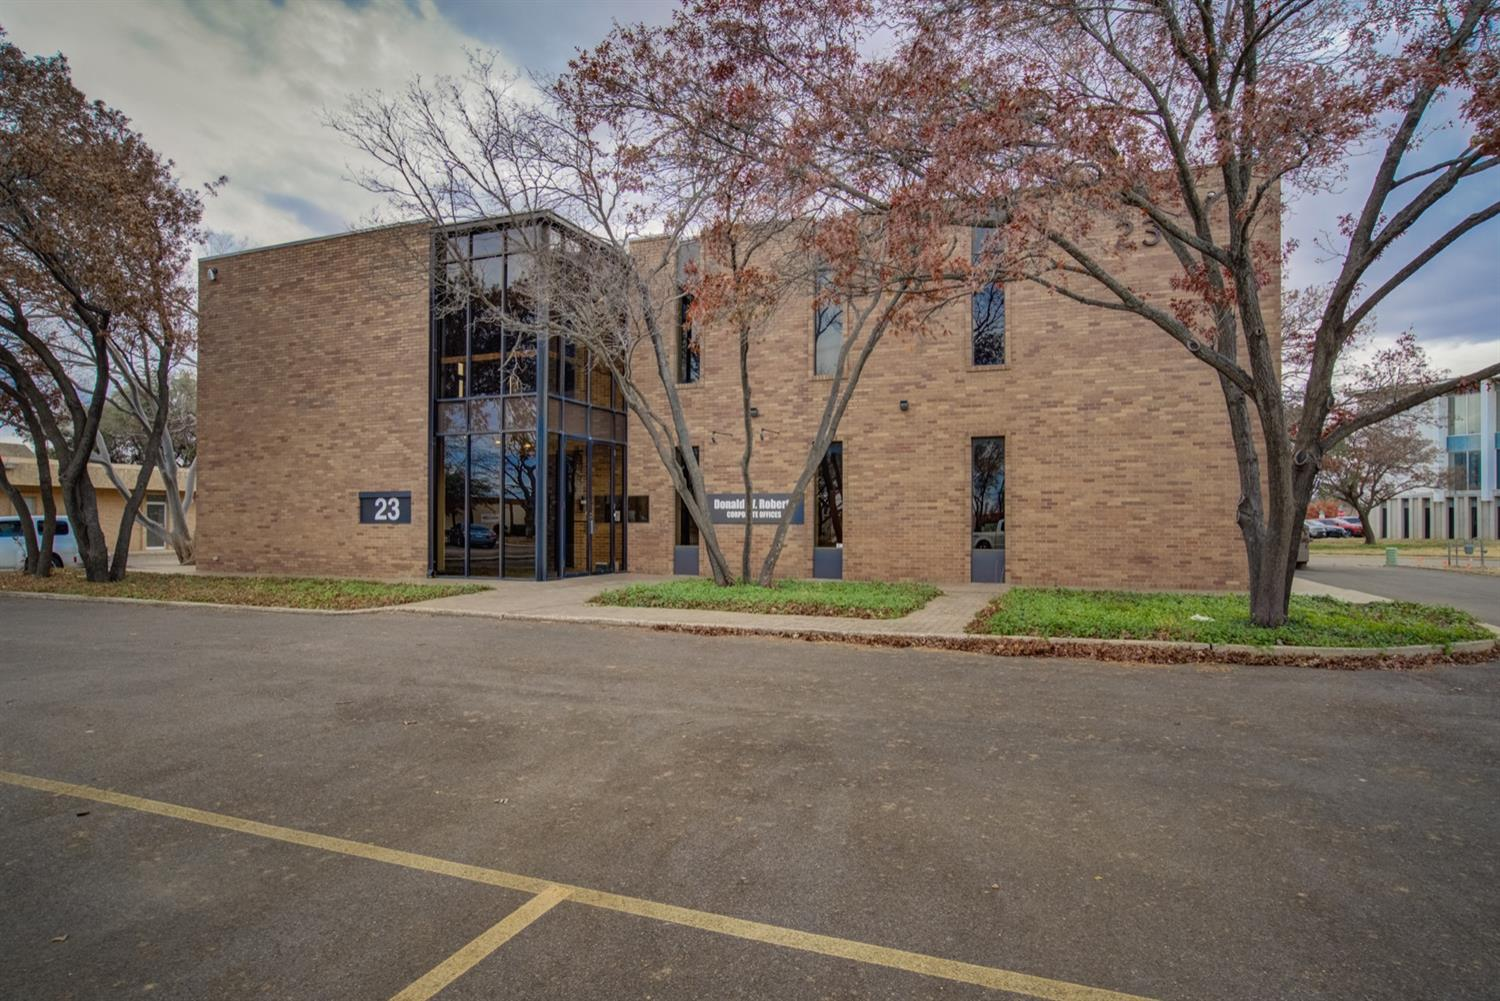 Beautifully and completely renovated, 2 story office building located in heart of the recently revived and growing Briercroft Office Park. This is one you MUST SEE. Mature and well manicured landscaping surrounds the building. The building features multiple private offices overlooking large open spaces perfect for cubicles or an open office concept. Both floors have men and women's private restrooms, large conference areas and large break rooms with appliances. This building is turn key ready for a newly established or growing business with quick and easy access to anywhere in Lubbock